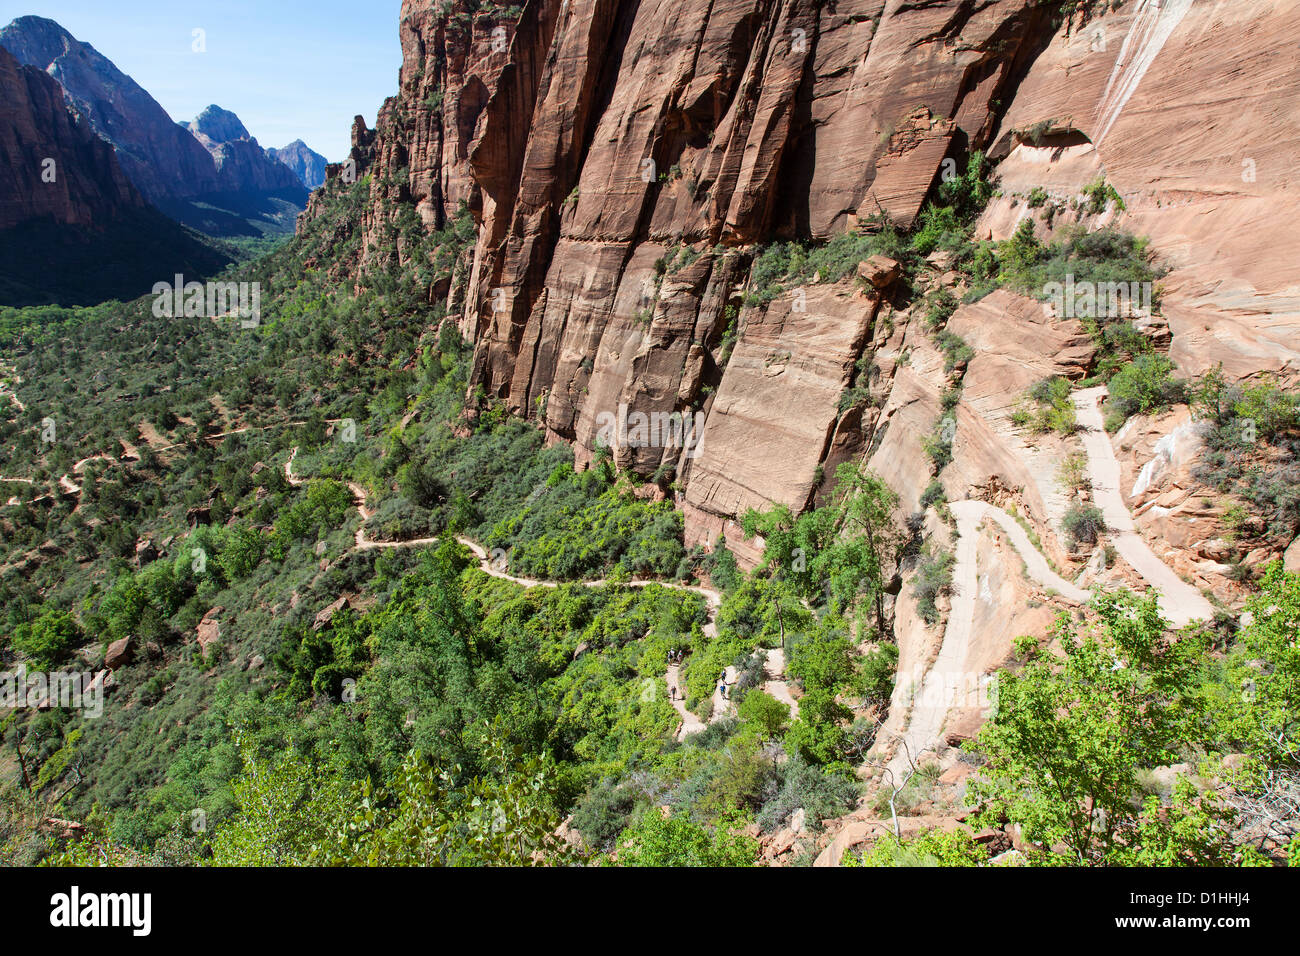 The Trail to Angels Landing, Zion NP, Utah Stock Photo